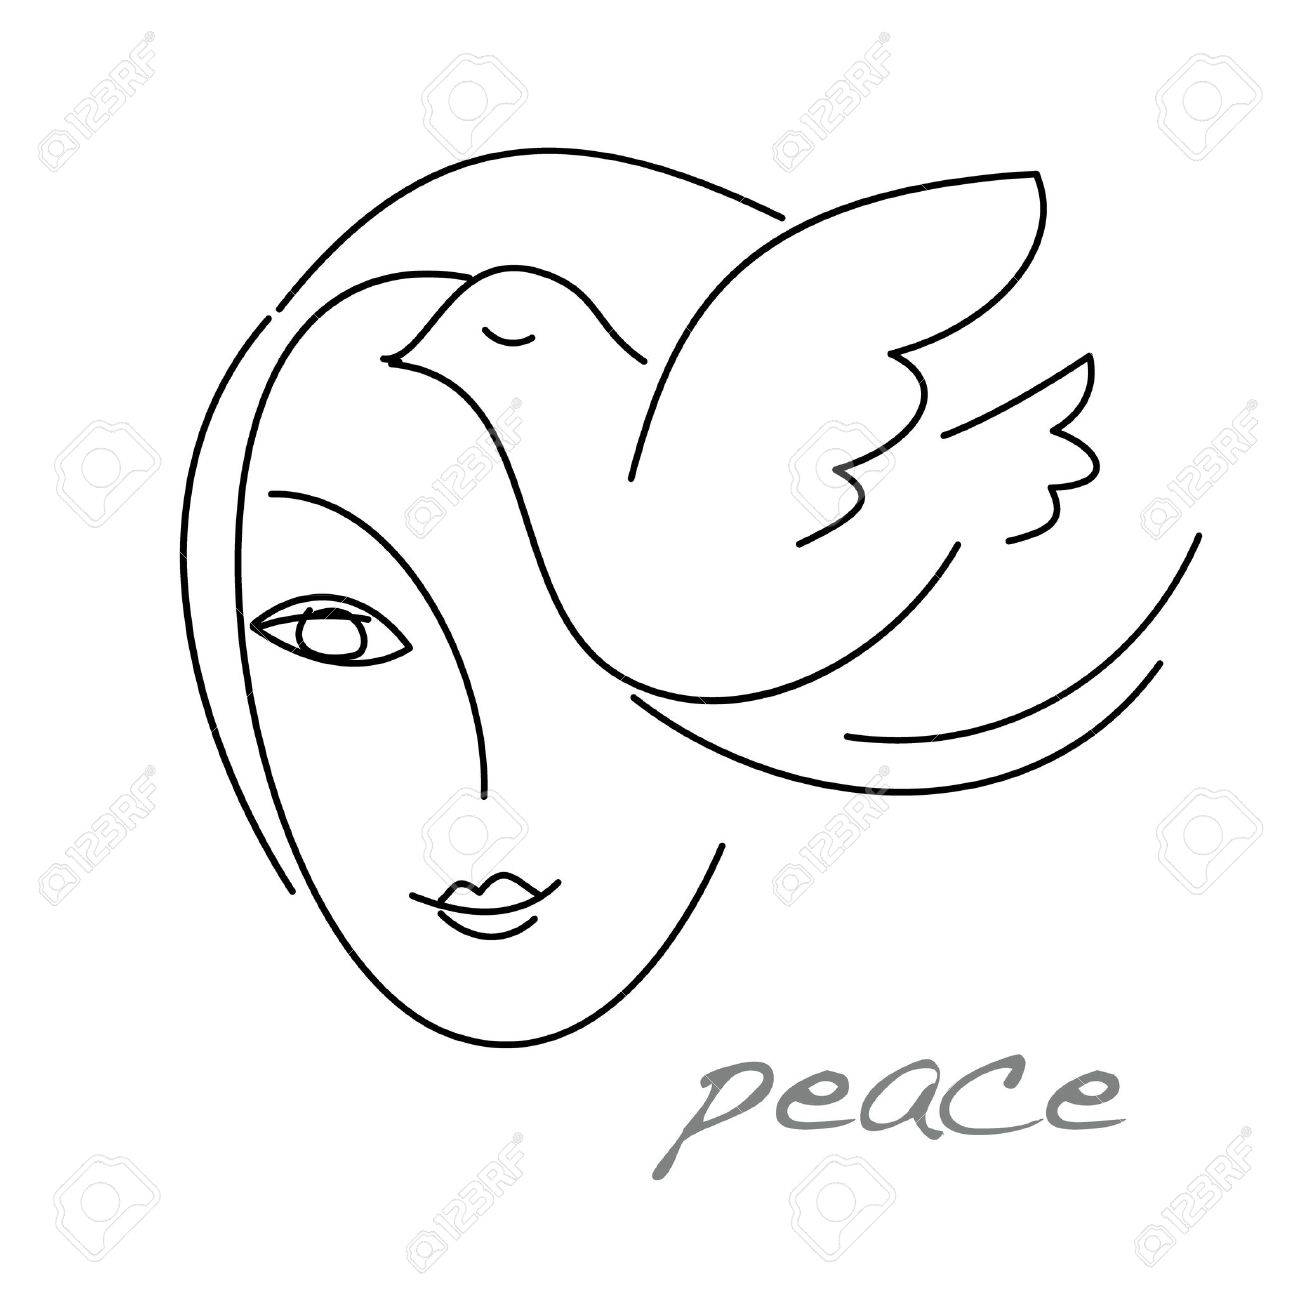 The sign - emblem of peace. A girl and a dove. Stock Vector - 17249433